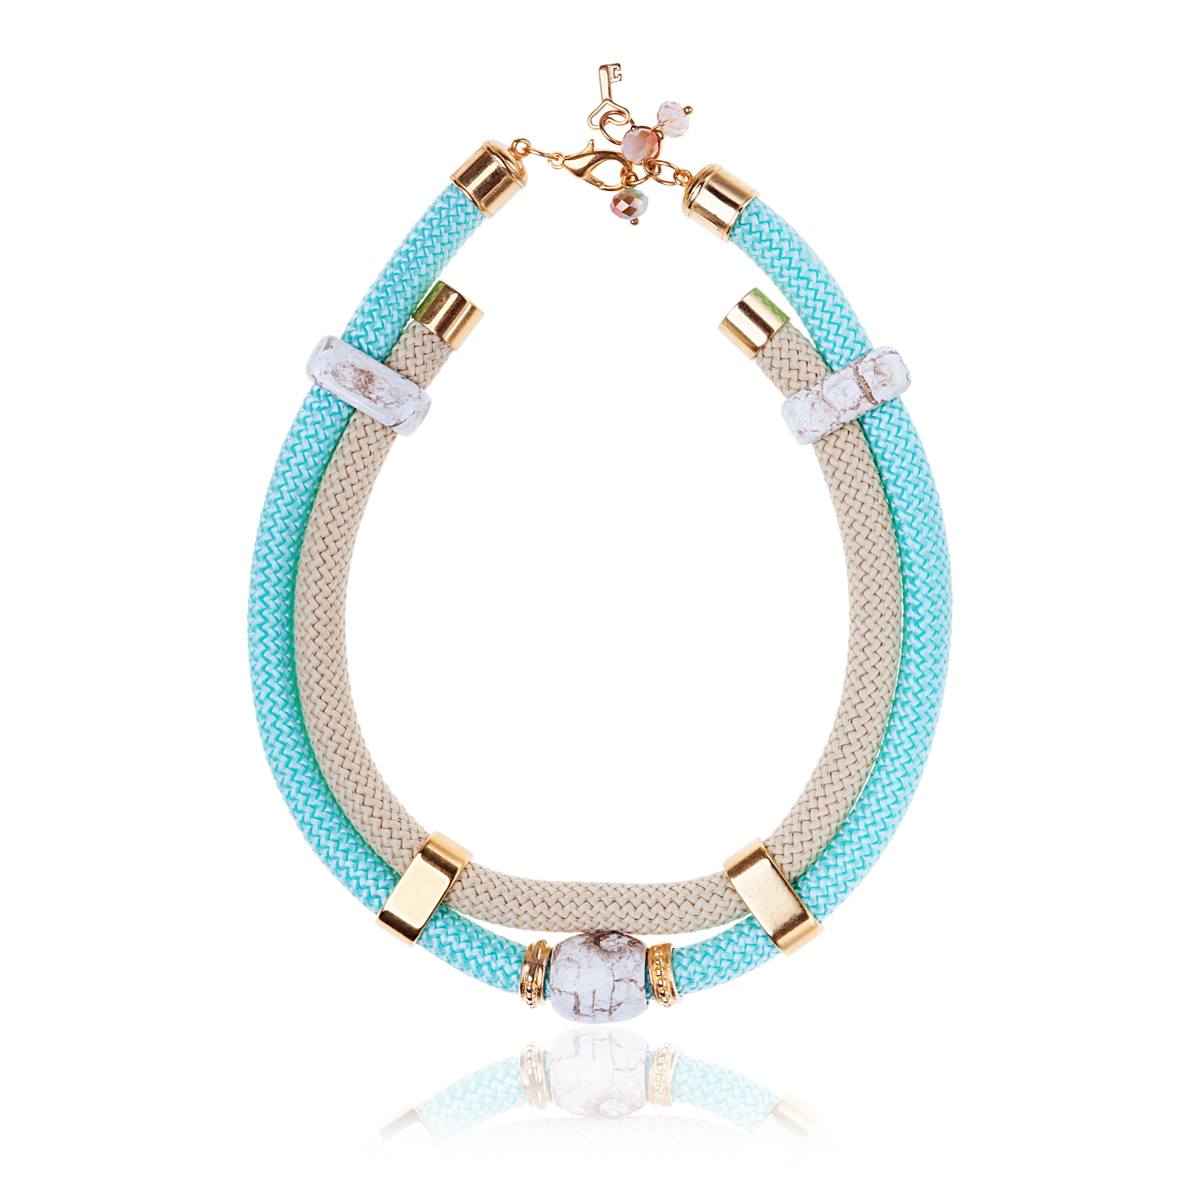 IRIS: Make a statement necklace / Blue | Accessories,Jewelry > Necklaces,Jewelry -  Hiphunters Shop